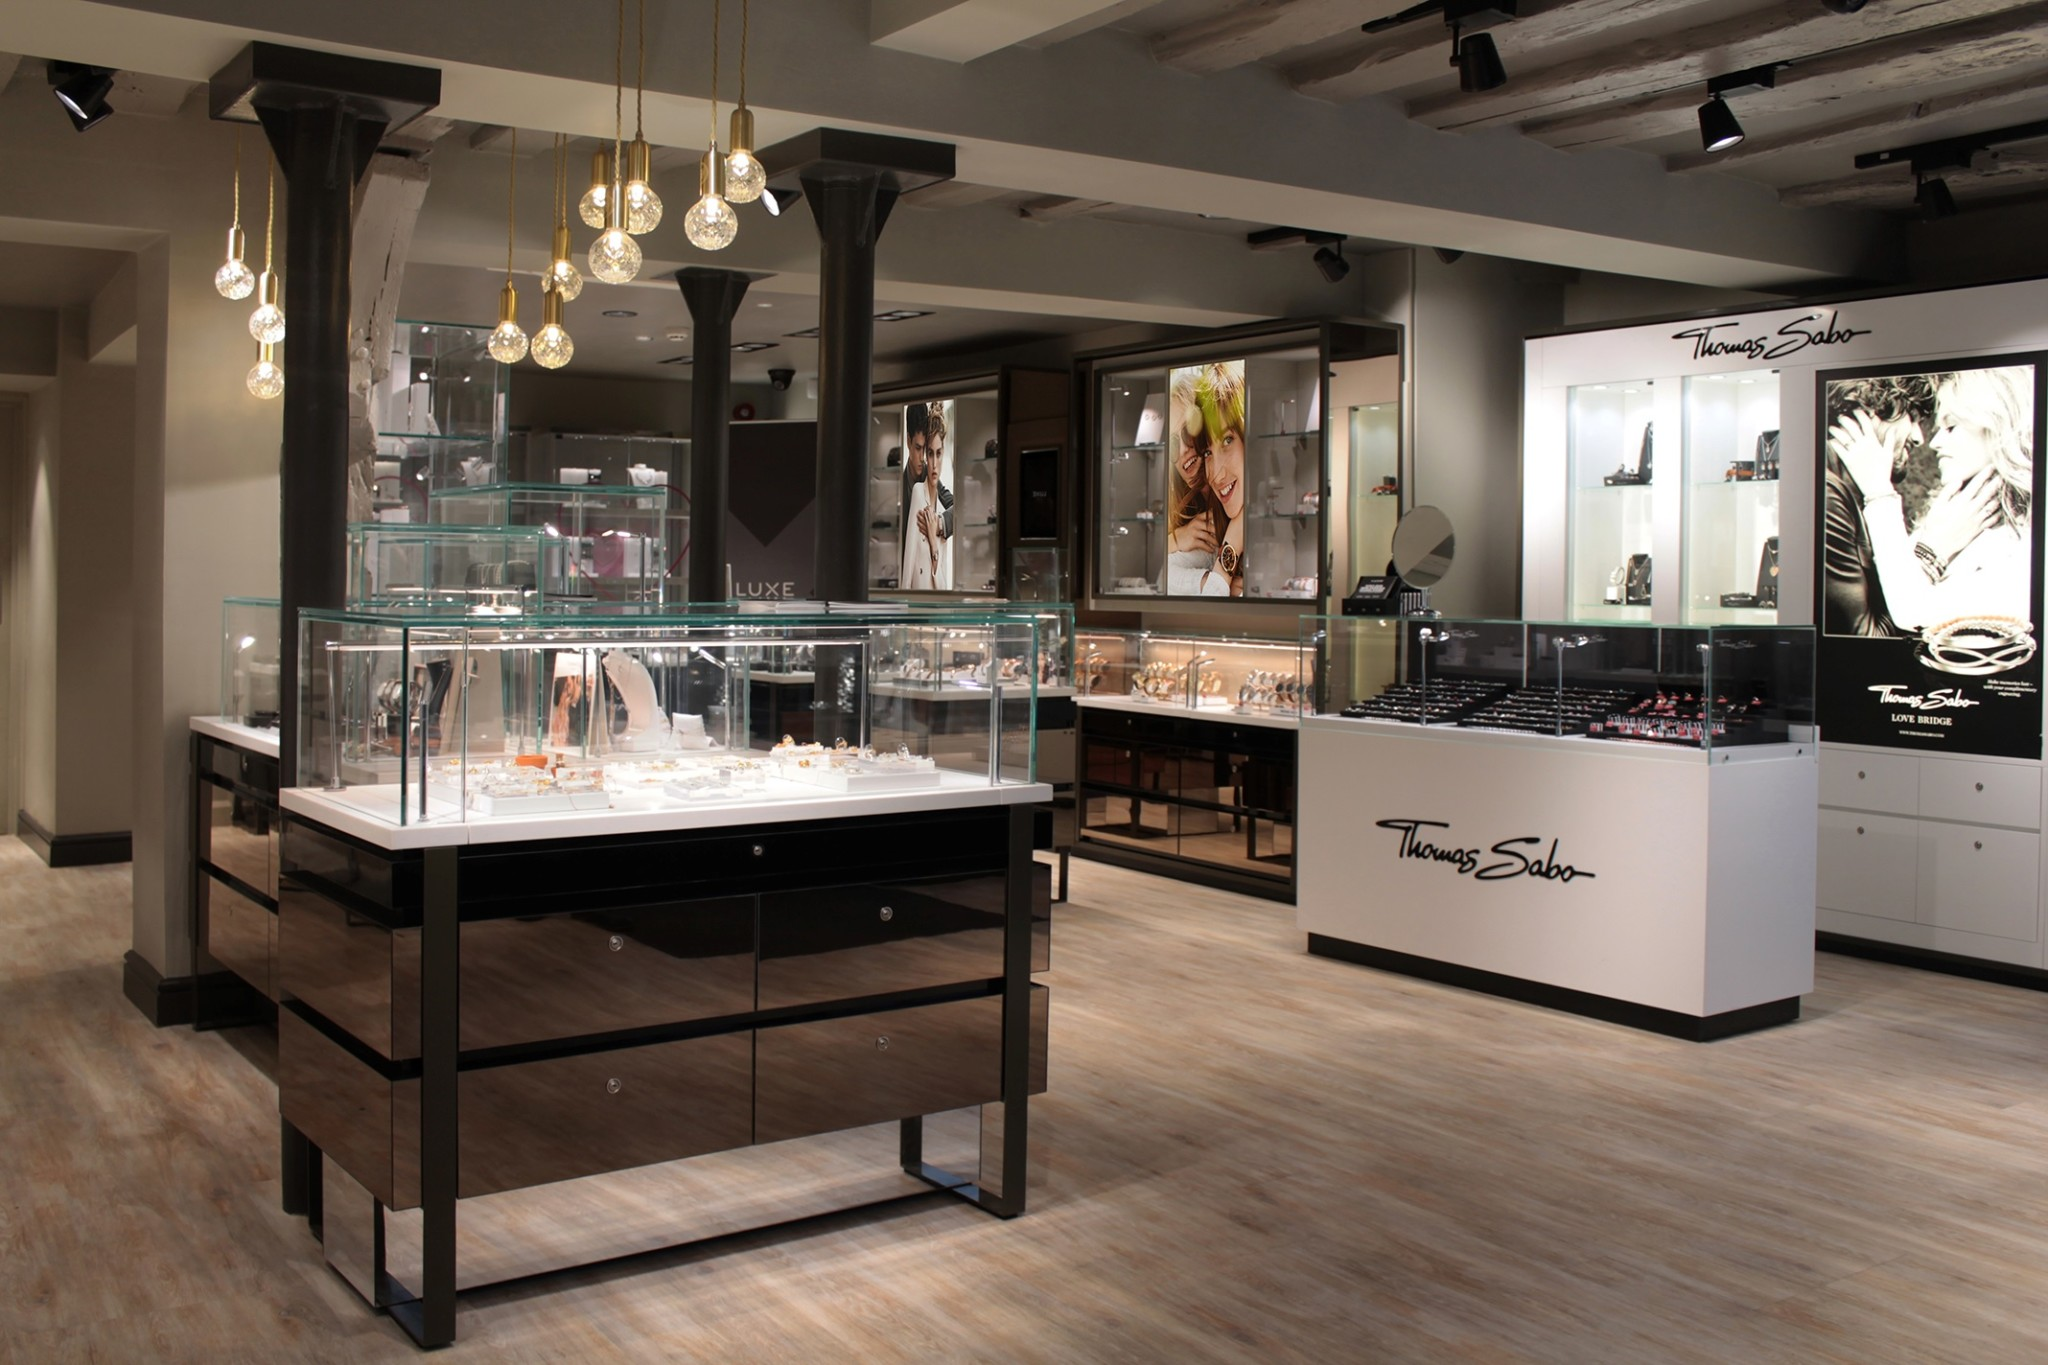 The LUXE by Hugh Rice store in Beverley.